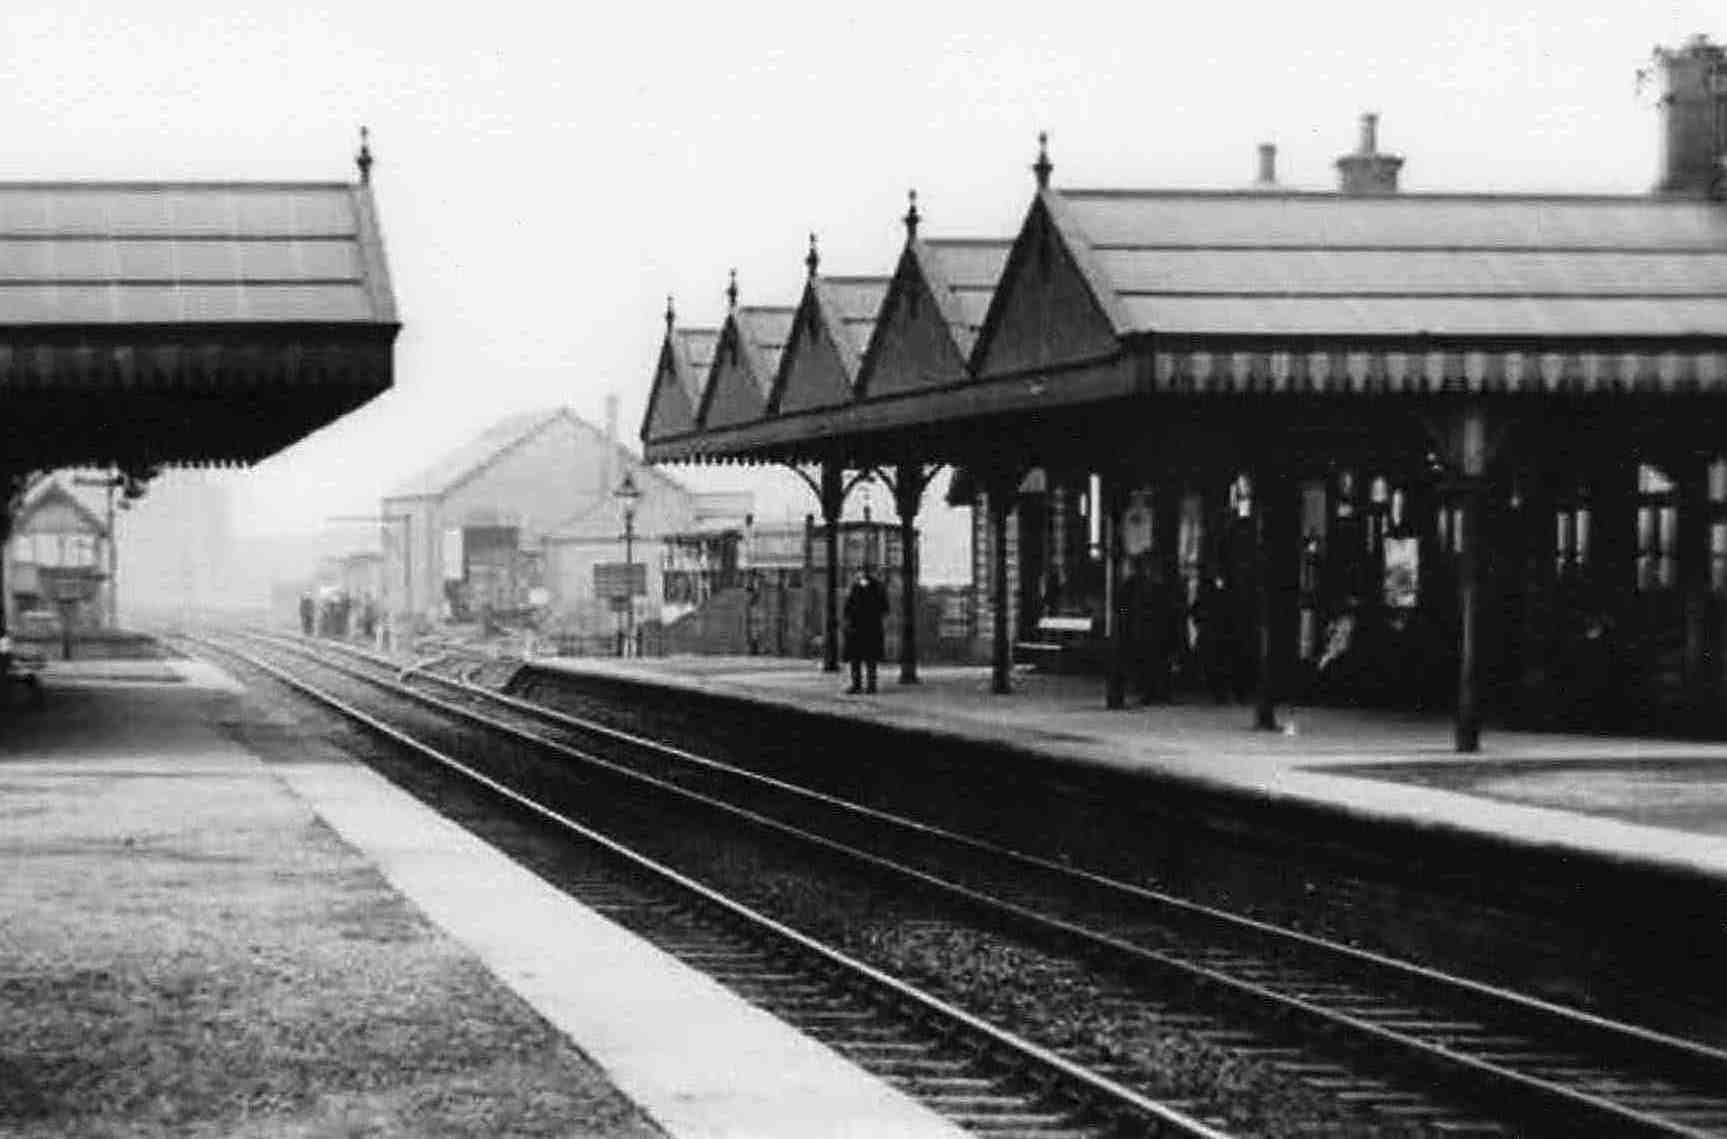 An early photograph of Killamarsh Central